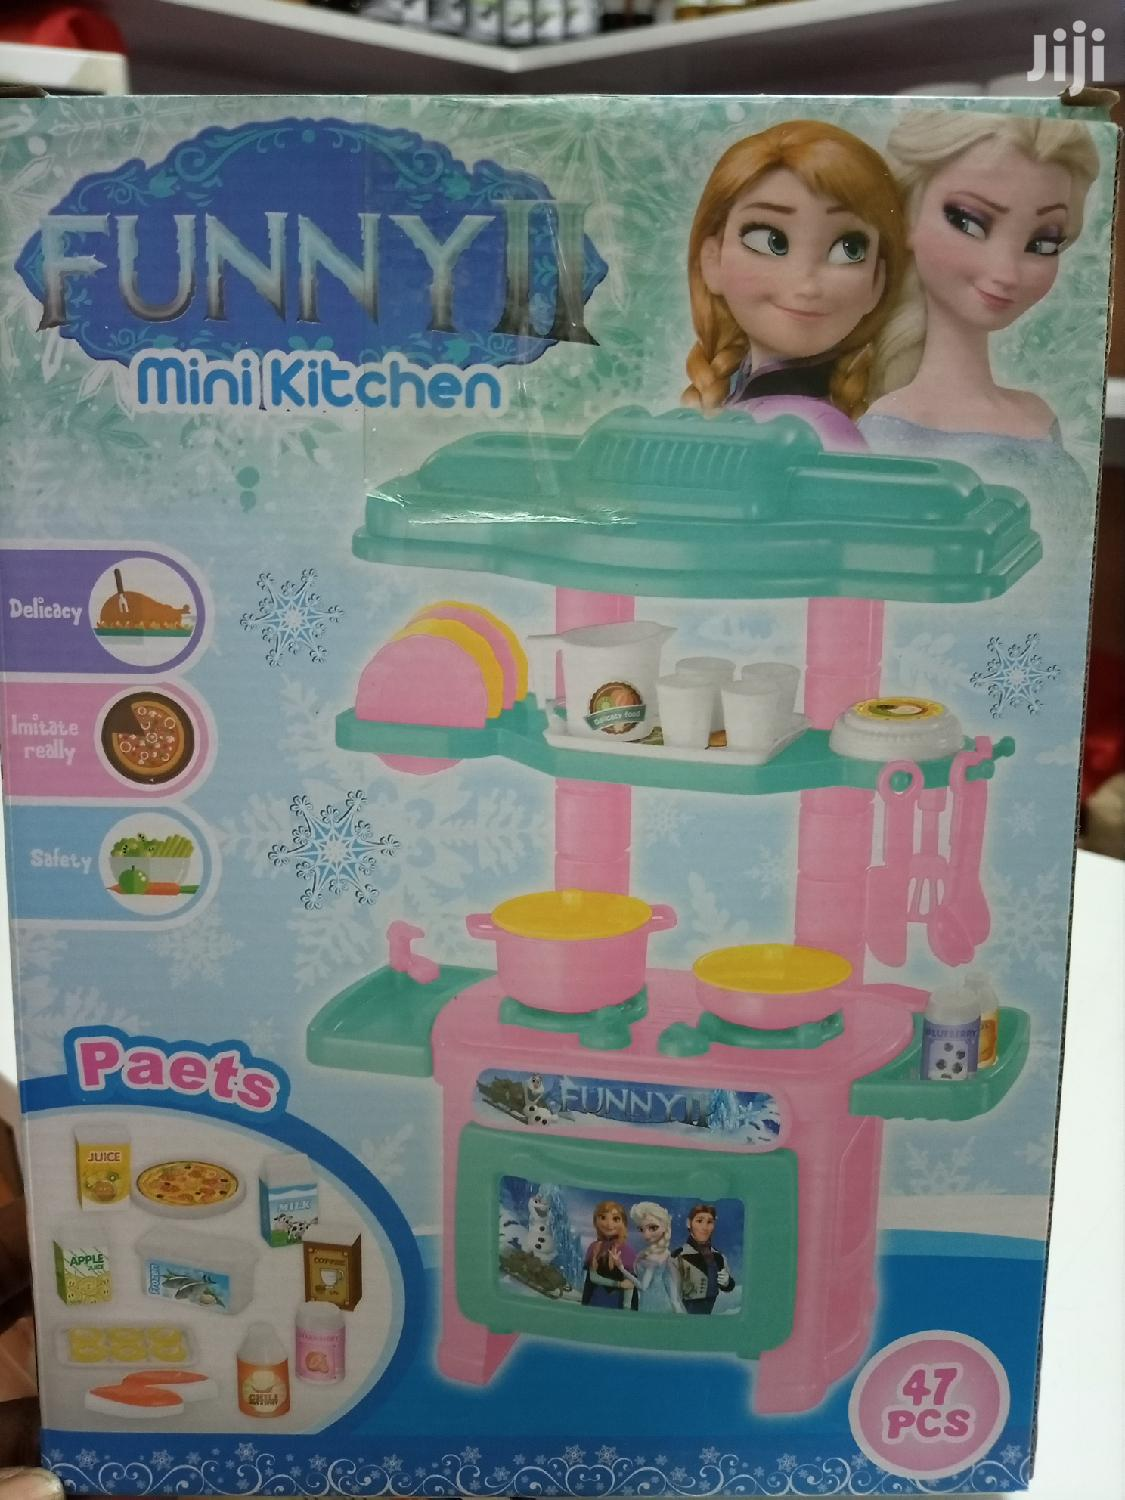 Archive: 47 Pcs Kitchen Set